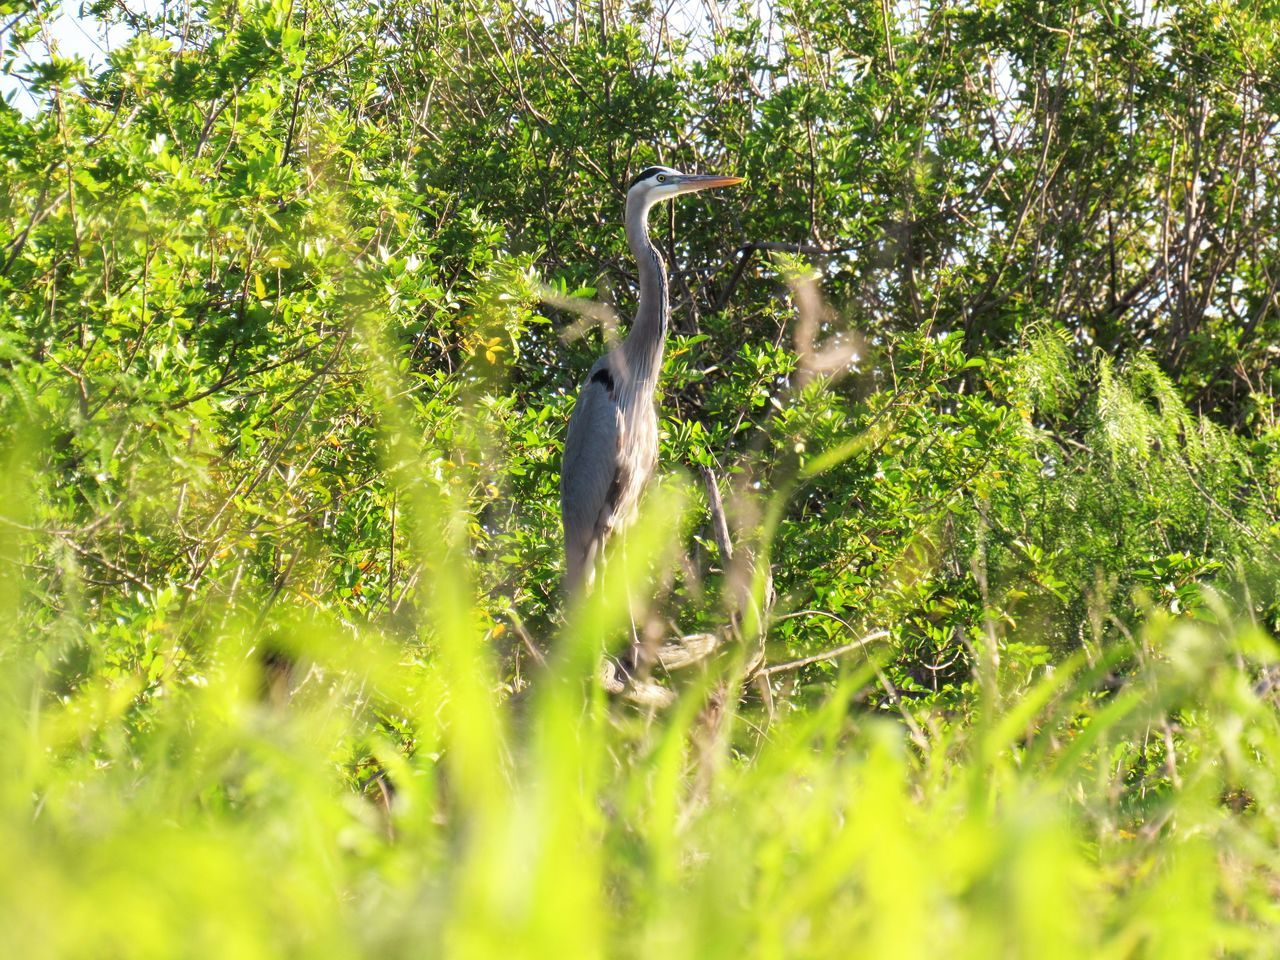 The Blue Heron Animal Themes Animal Wildlife Animals In The Wild Beauty In Nature Bird Blue Heron Bird Day Grass Gray Heron Green Color Heron Nature No People One Animal Outdoors Premium Collection